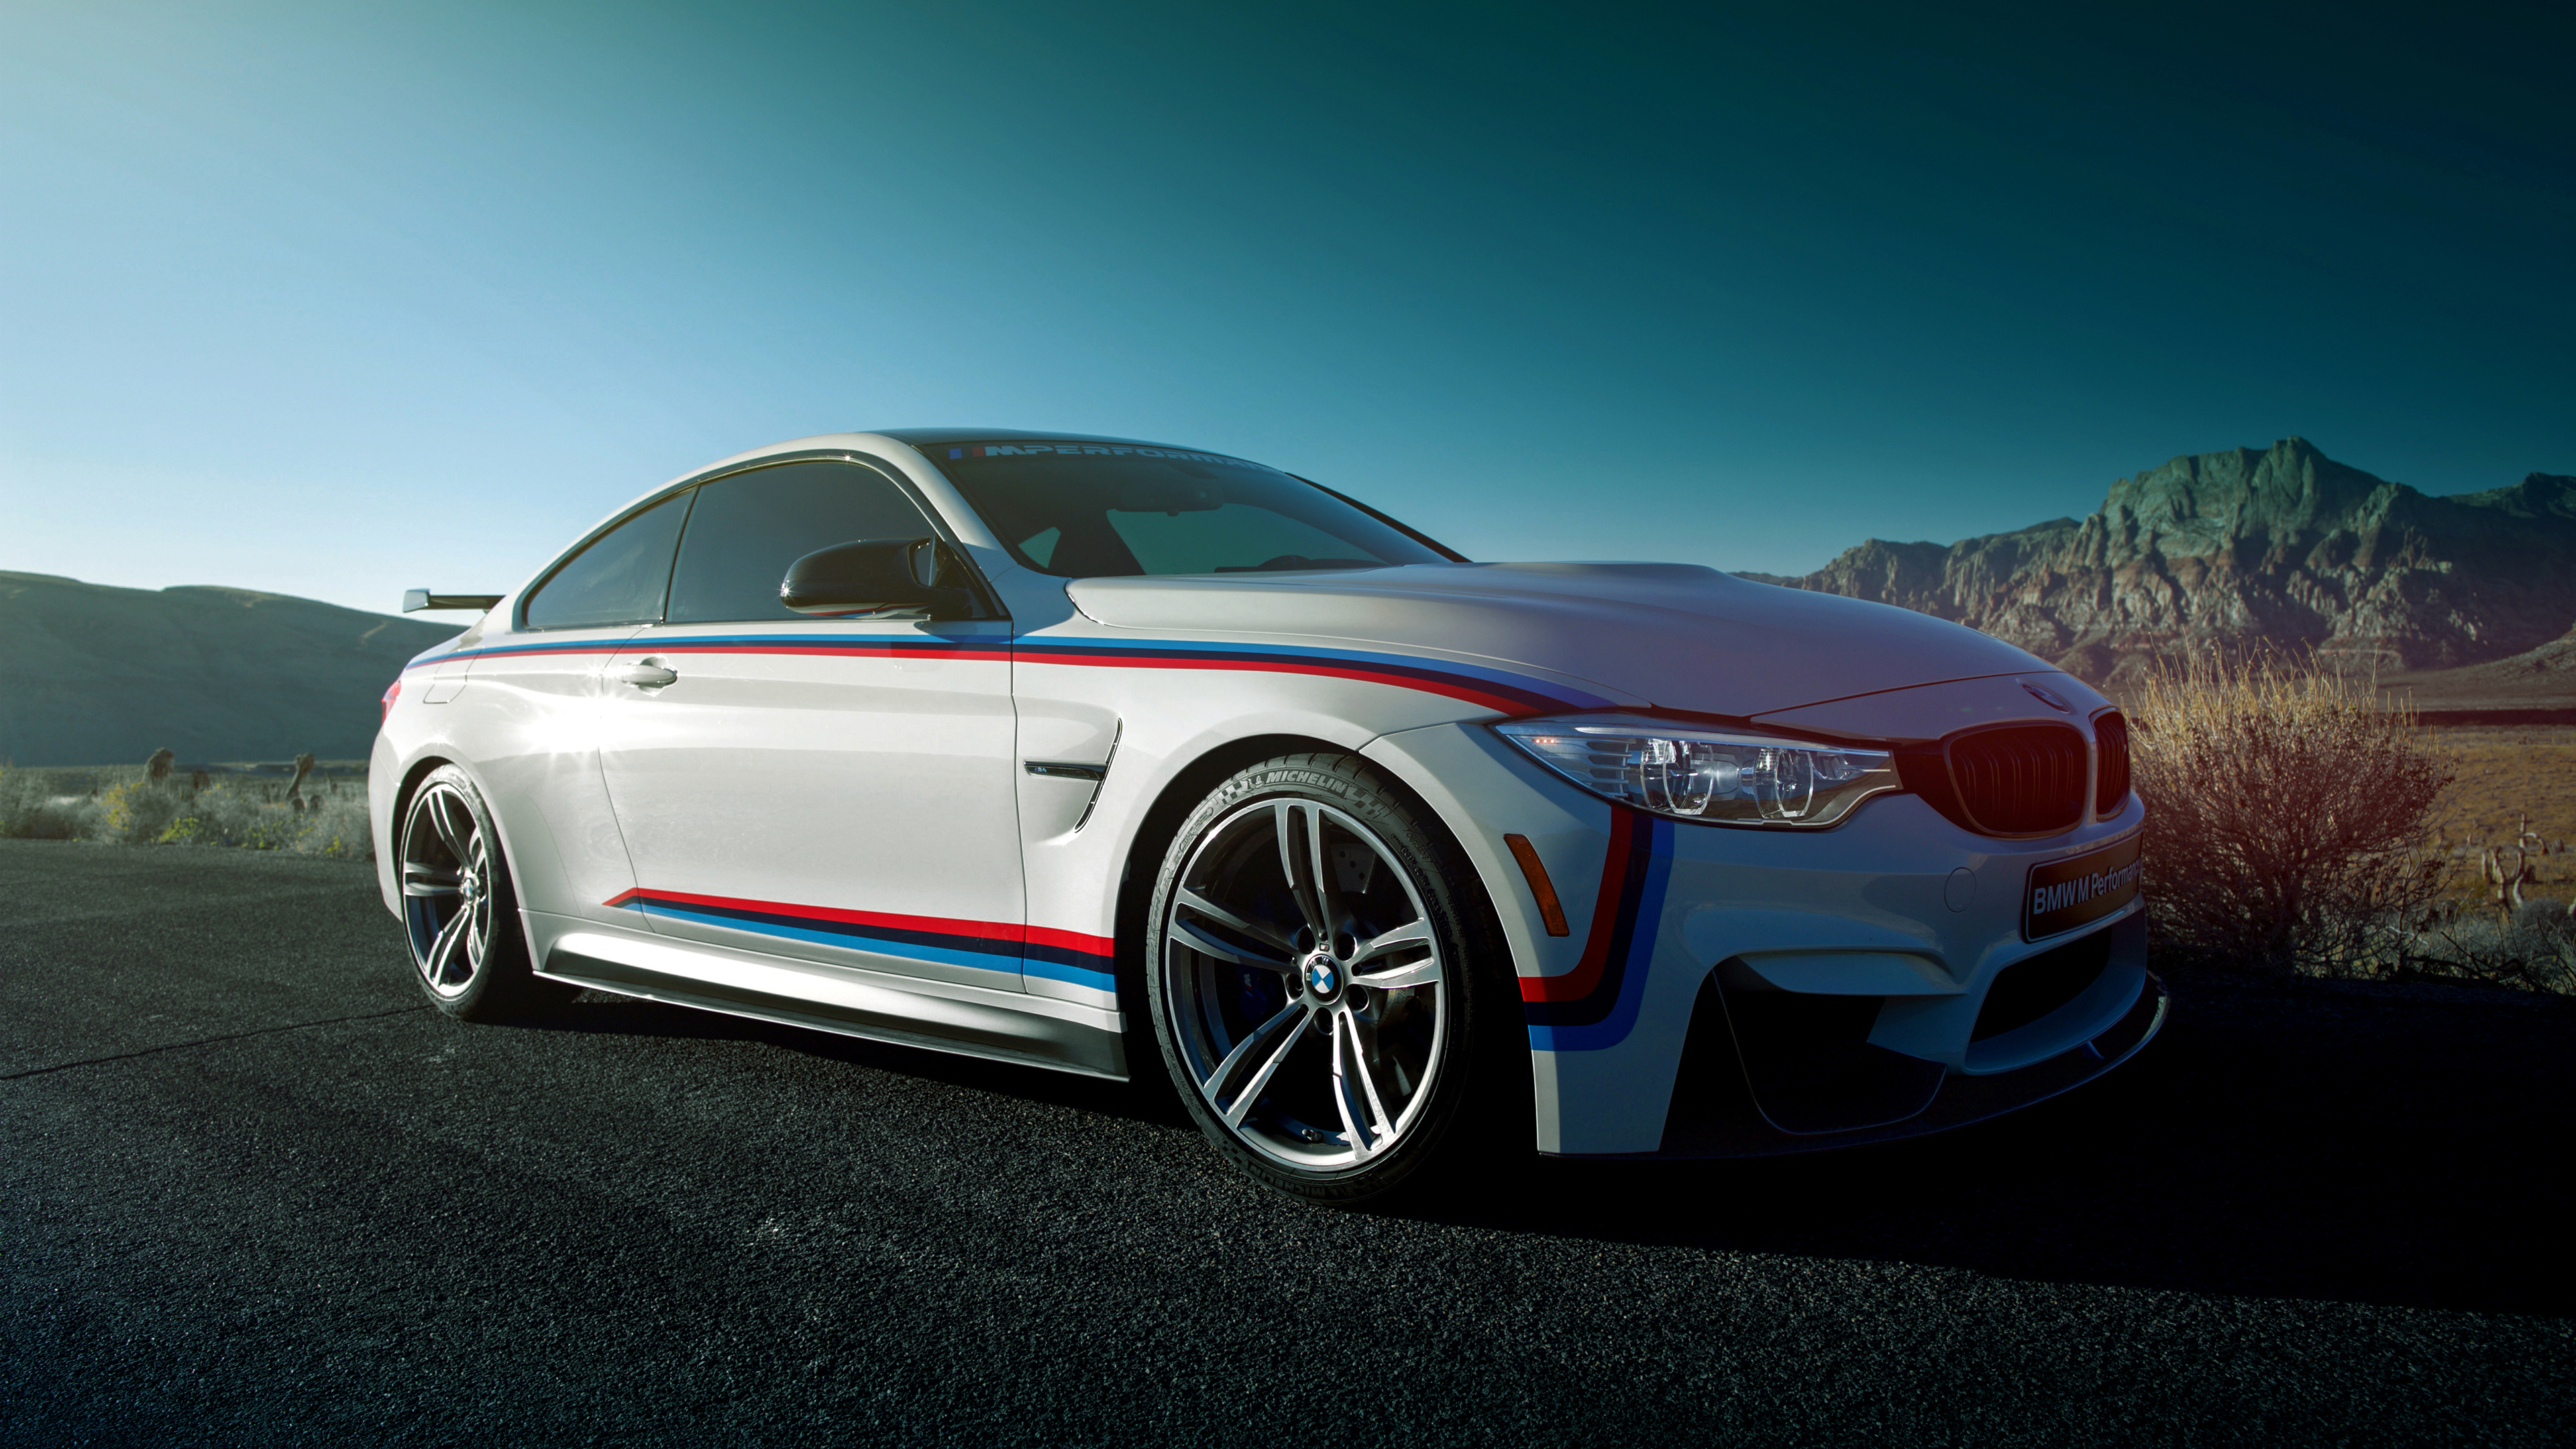 Bmw M4 Coupe M Performance Wallpaper Hd Car Wallpapers